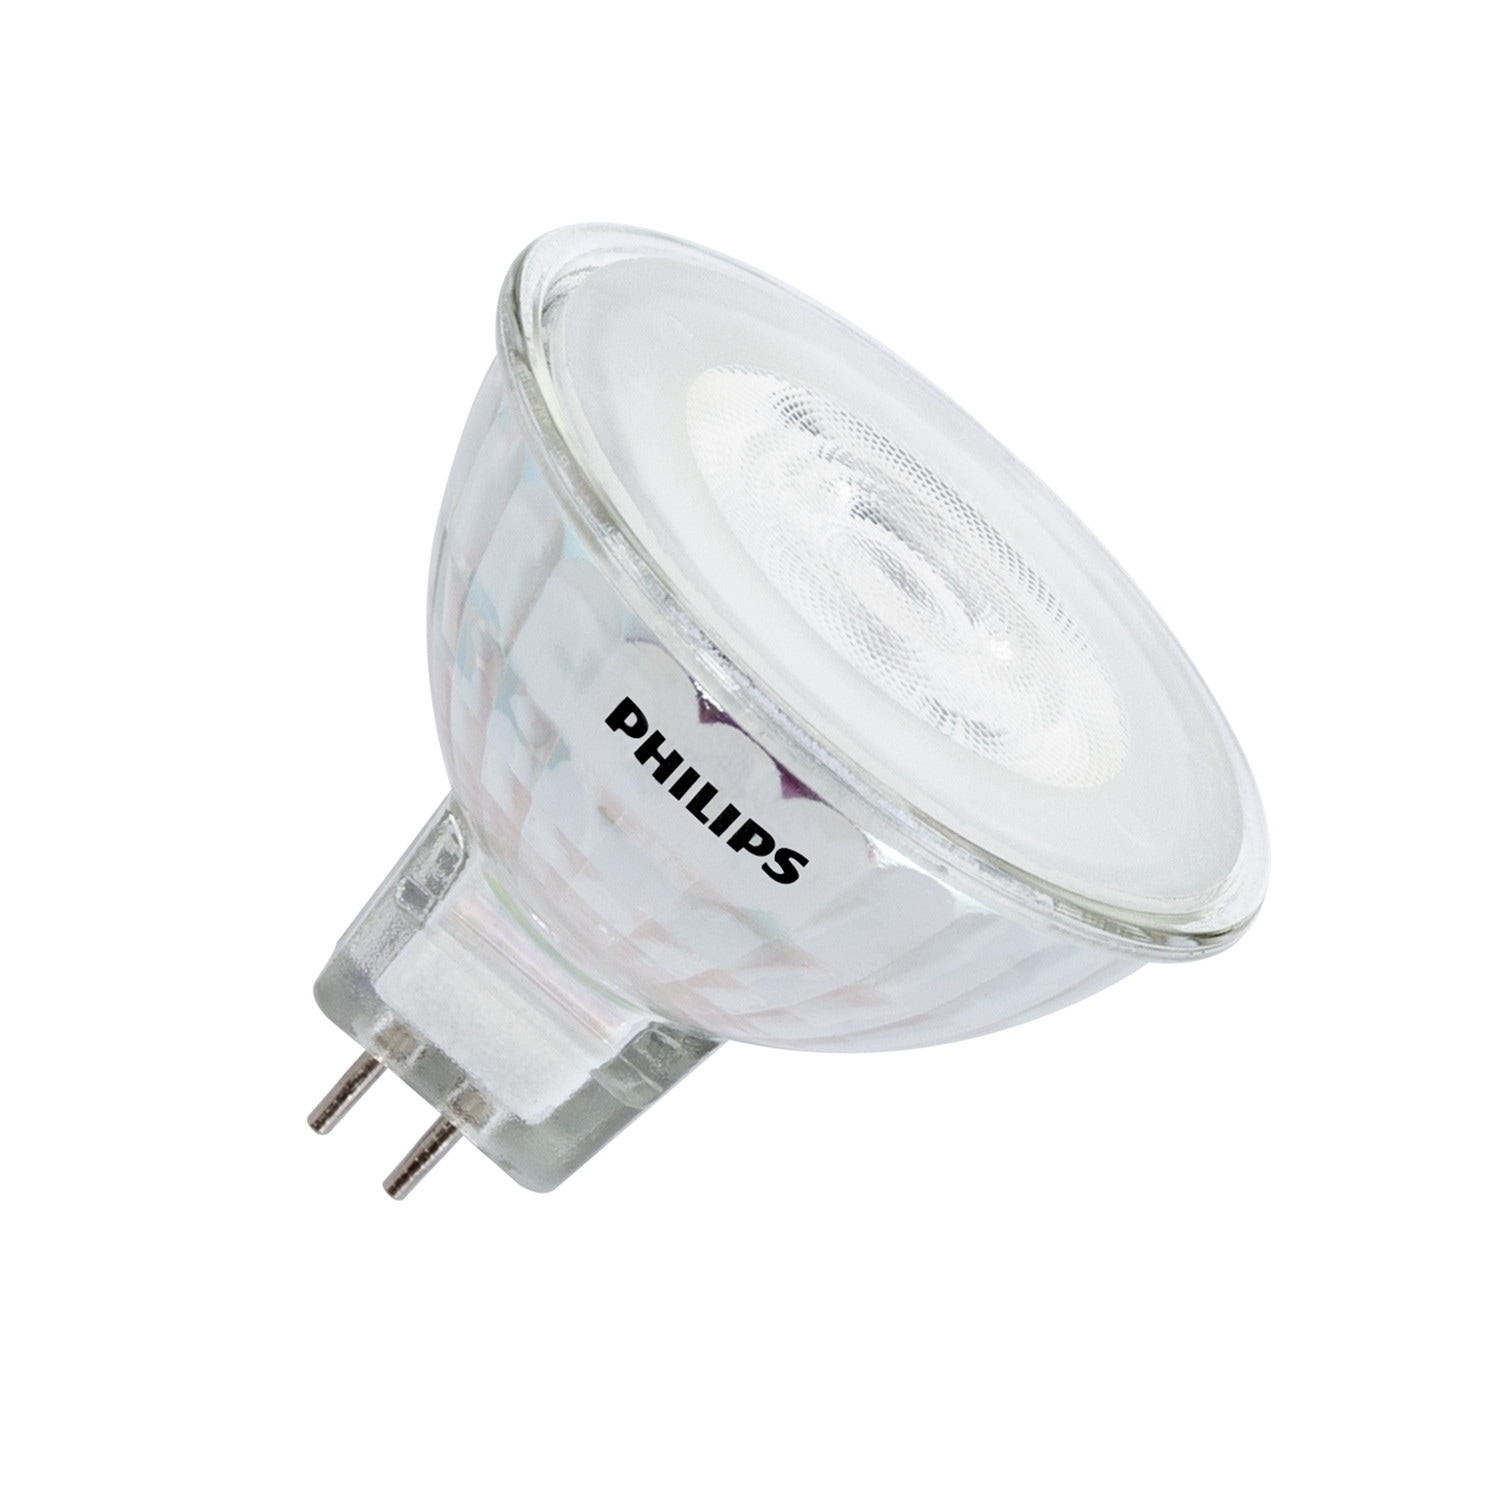 Valor Lamparas Led Lámpara Led Gu5 3 Mr16 Regulable Philips 12v Spotvle 7w 36º